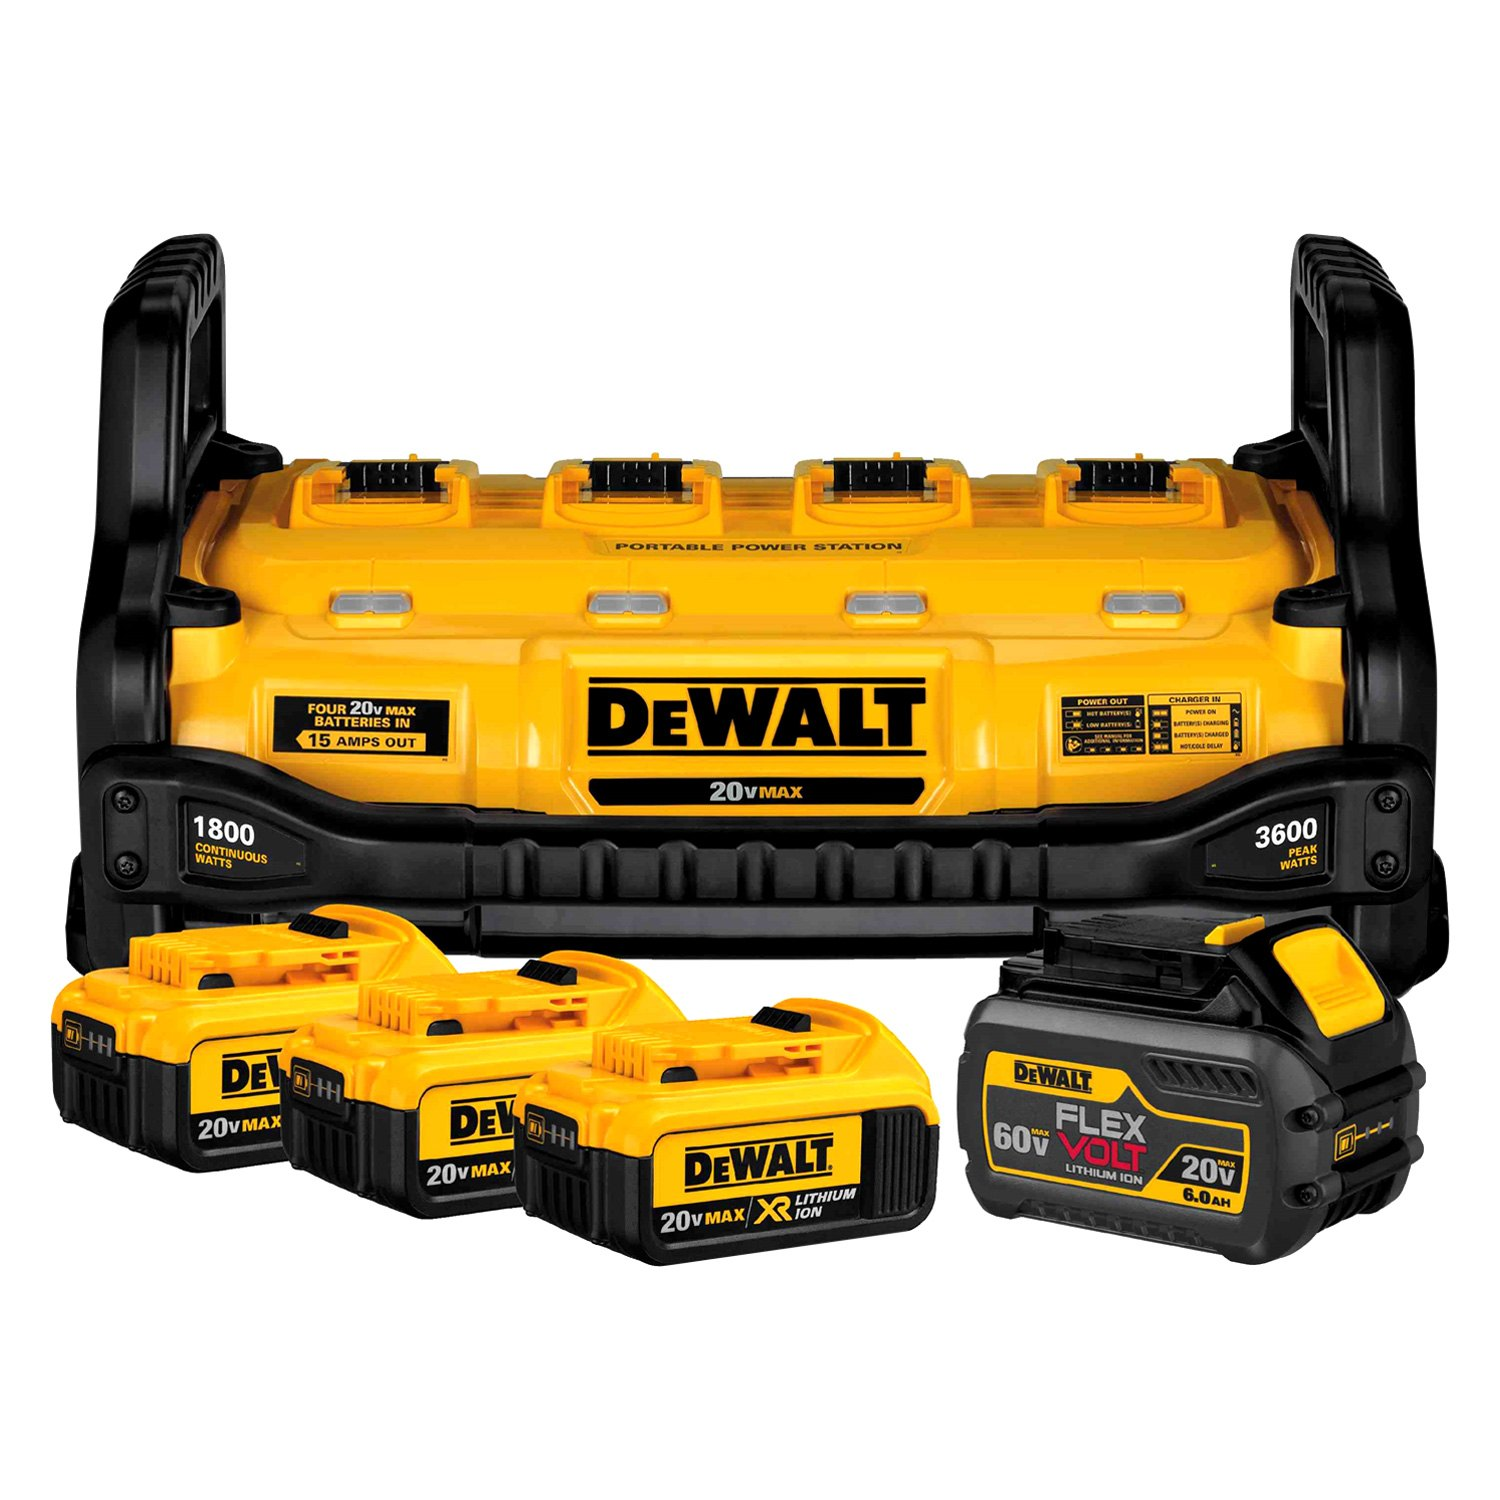 Dewalt 174 1800w Portable Power Station And Parallel